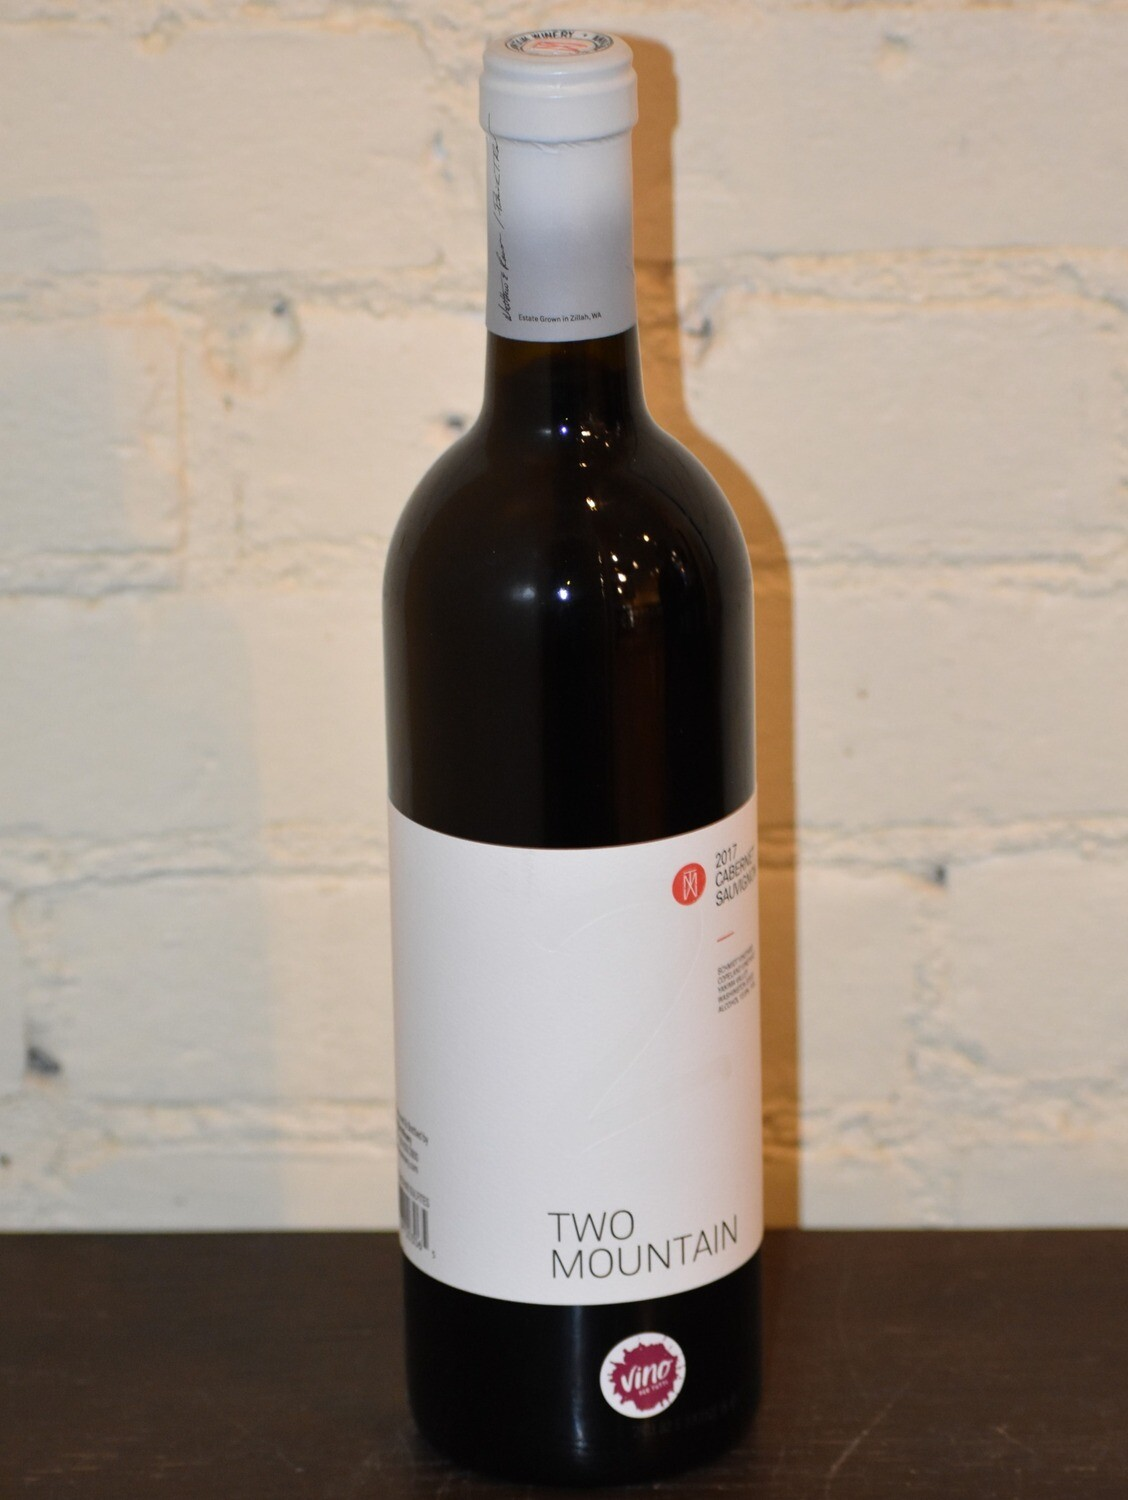 Two Mountain Cabernet Sauvignon